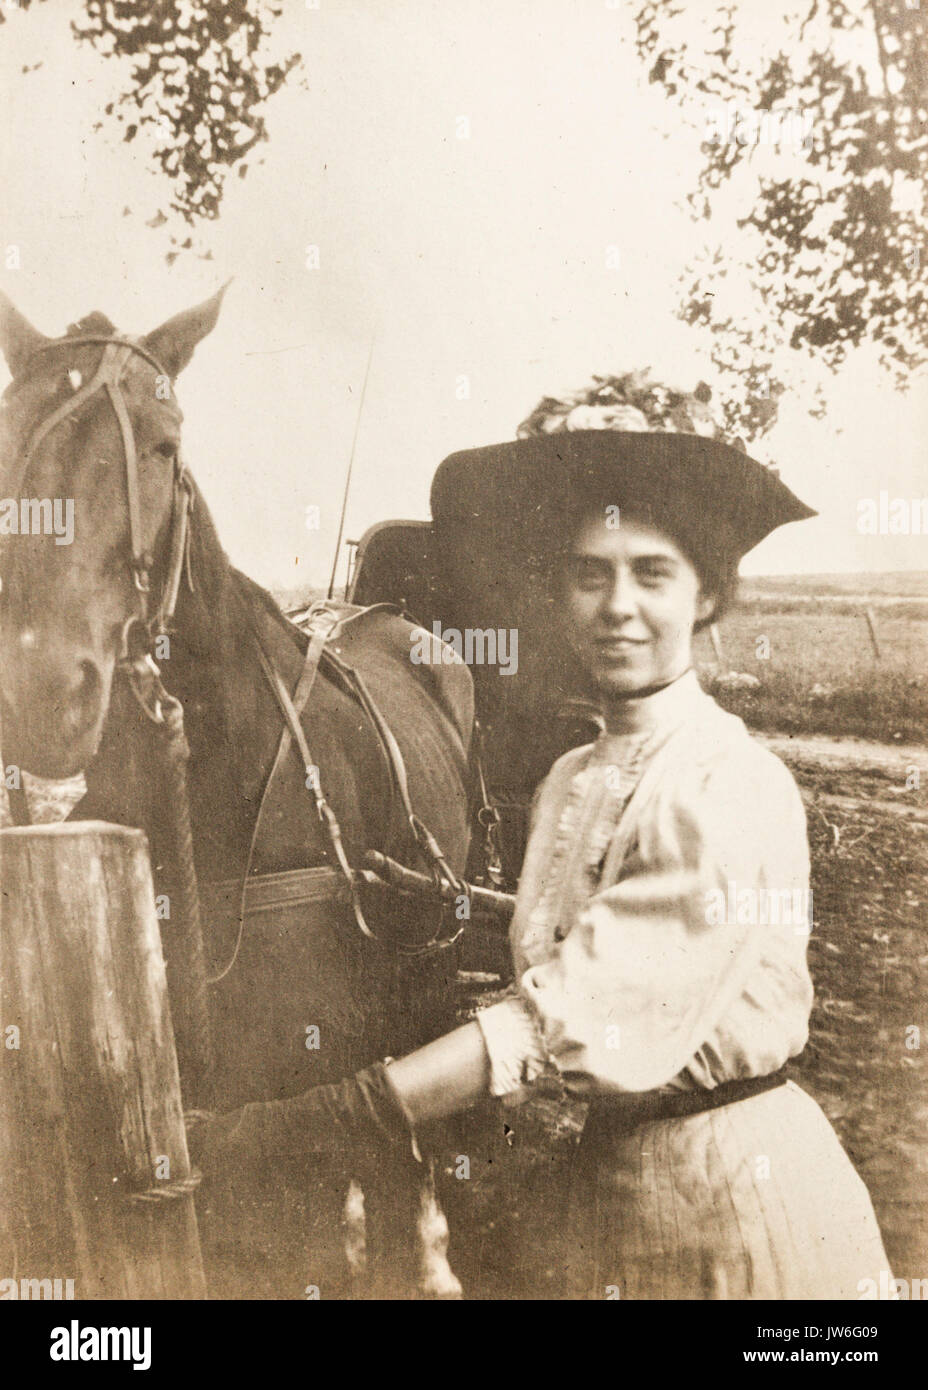 young-woman-with-a-horse-and-carriage-1907-to-1908-in-the-us-state-JW6G09.jpg